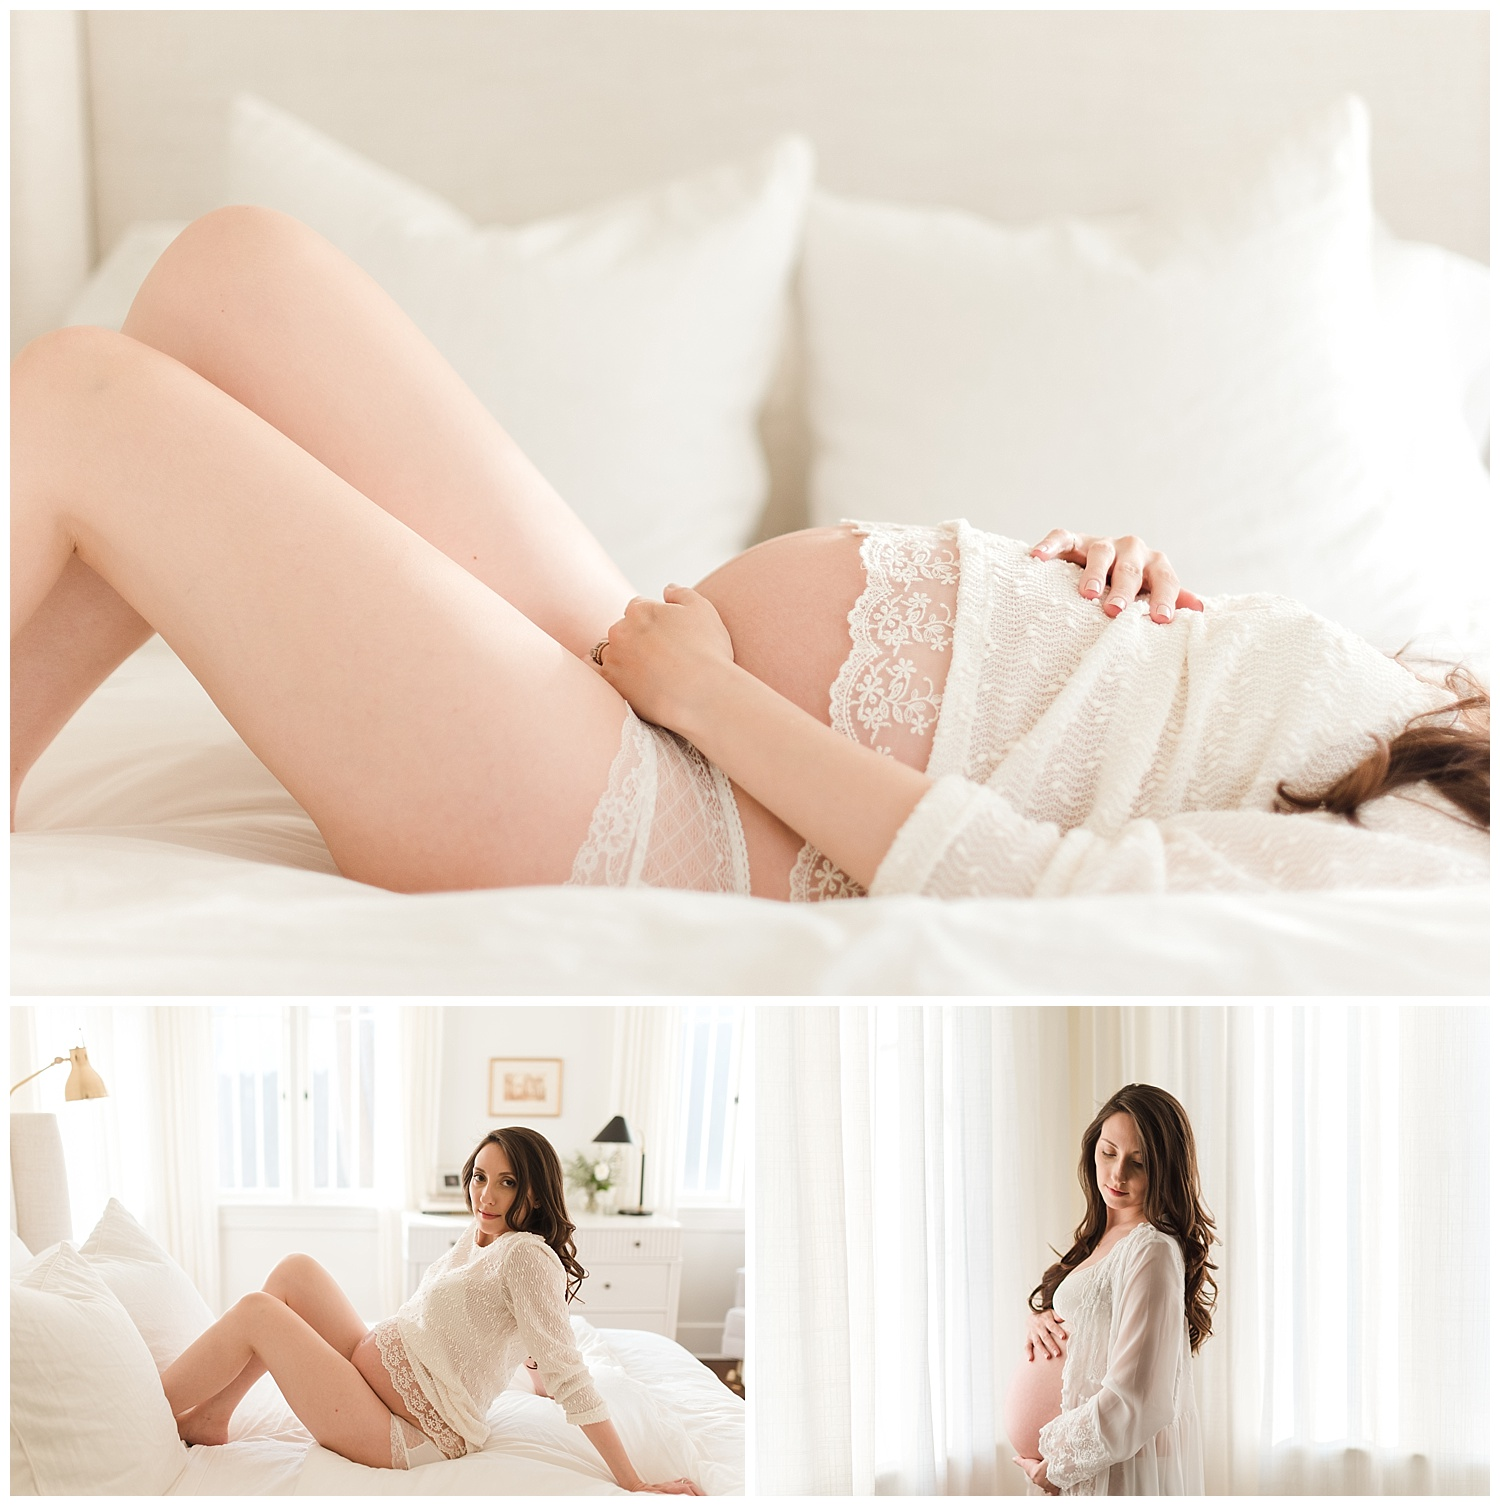 South Bay maternity photographer palos verdes torrance